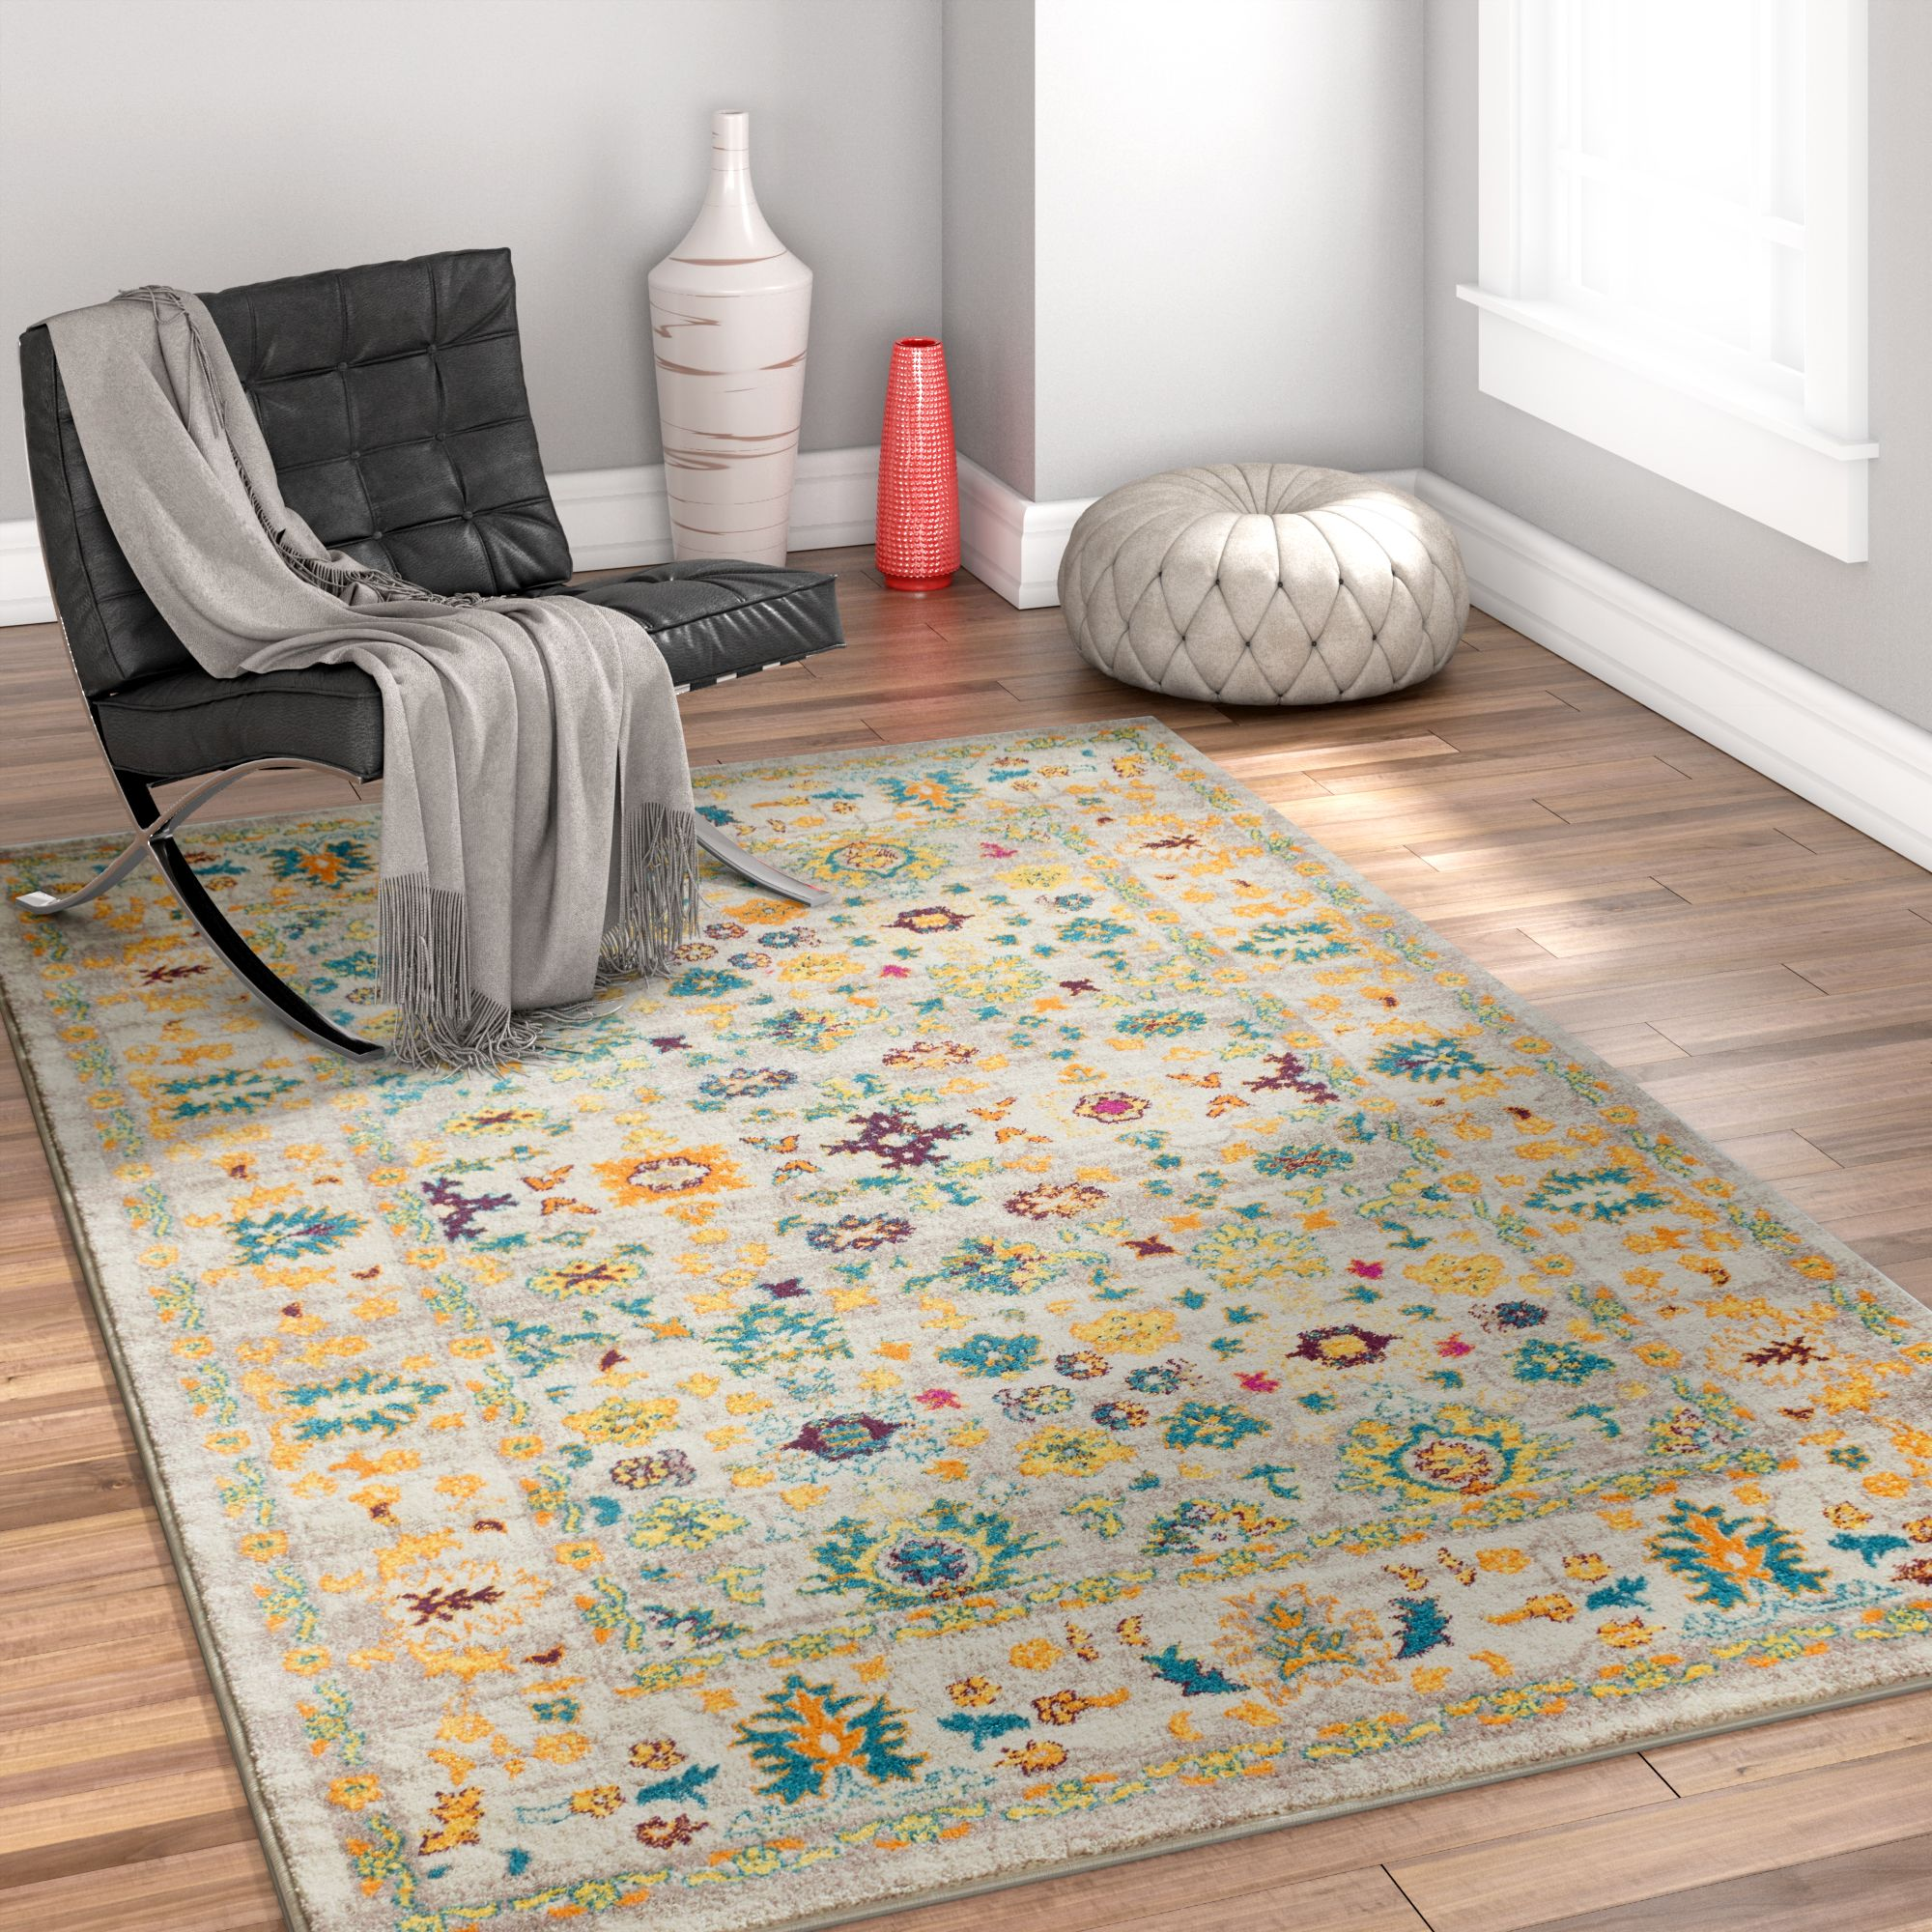 Well Woven Laurent Shaw Multi Vintage Traditional Area Rug